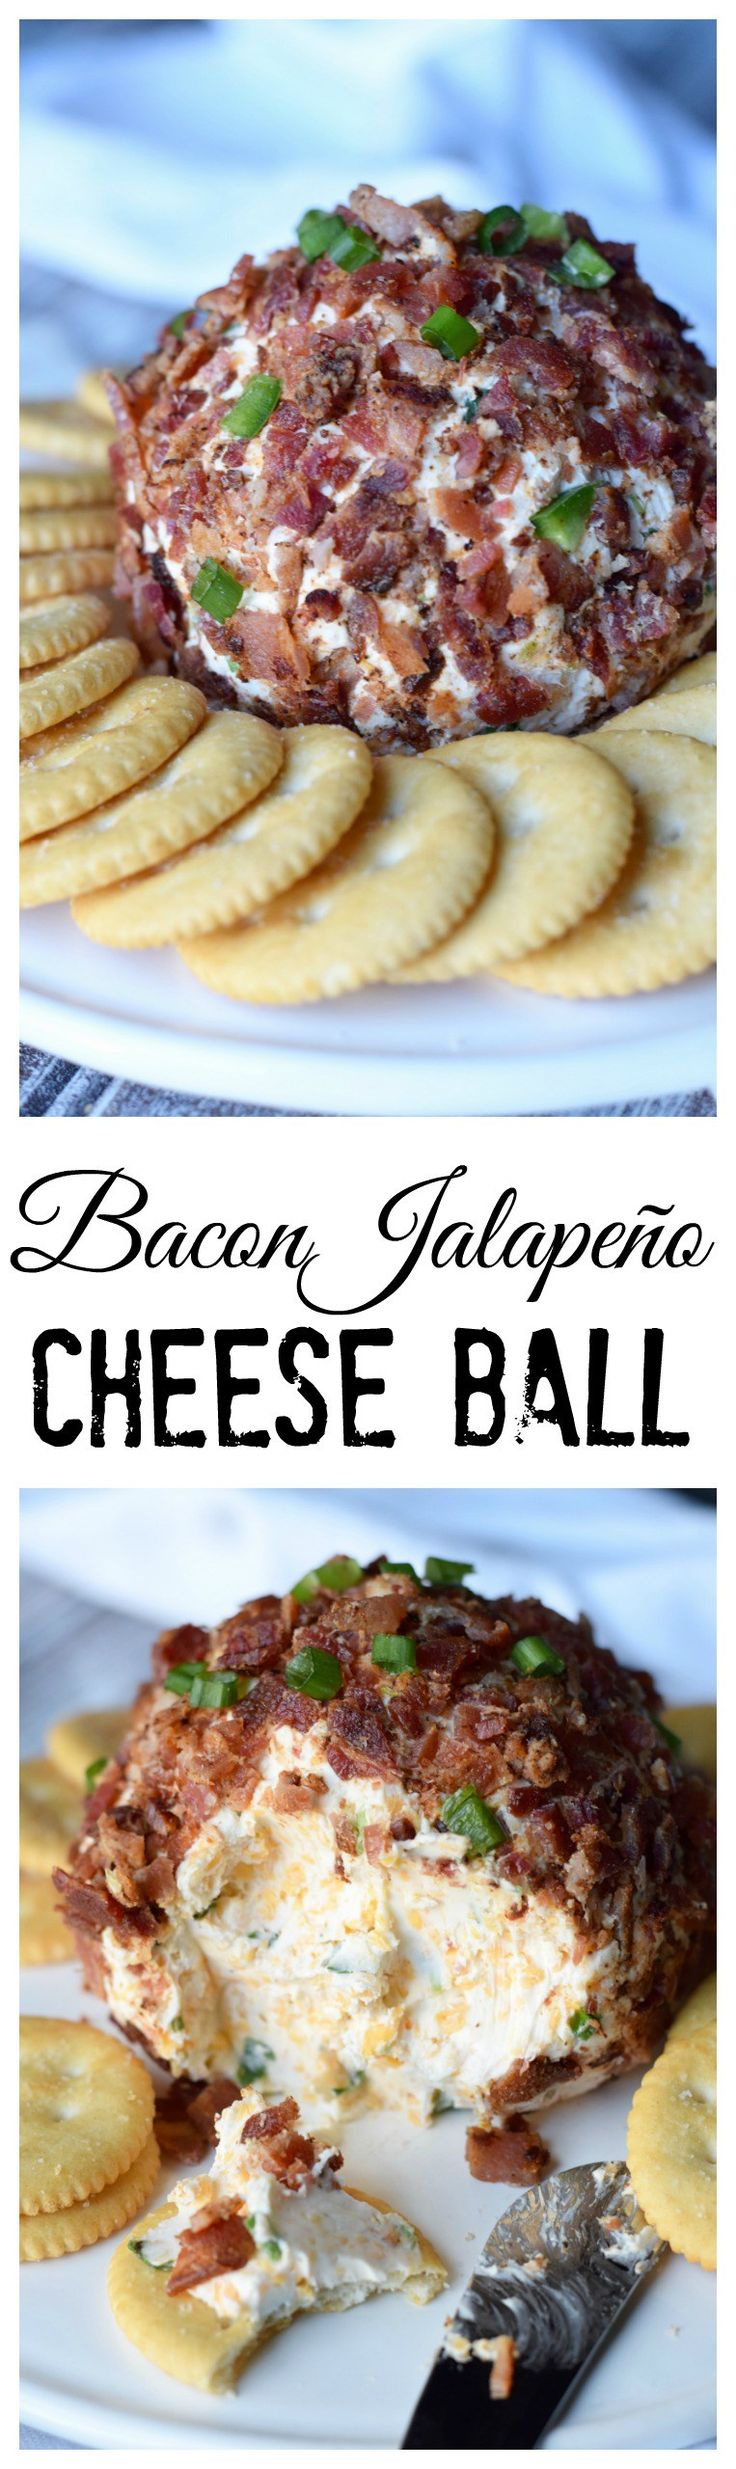 This bacon jalapeño cheese ball  is loaded with great flavor.